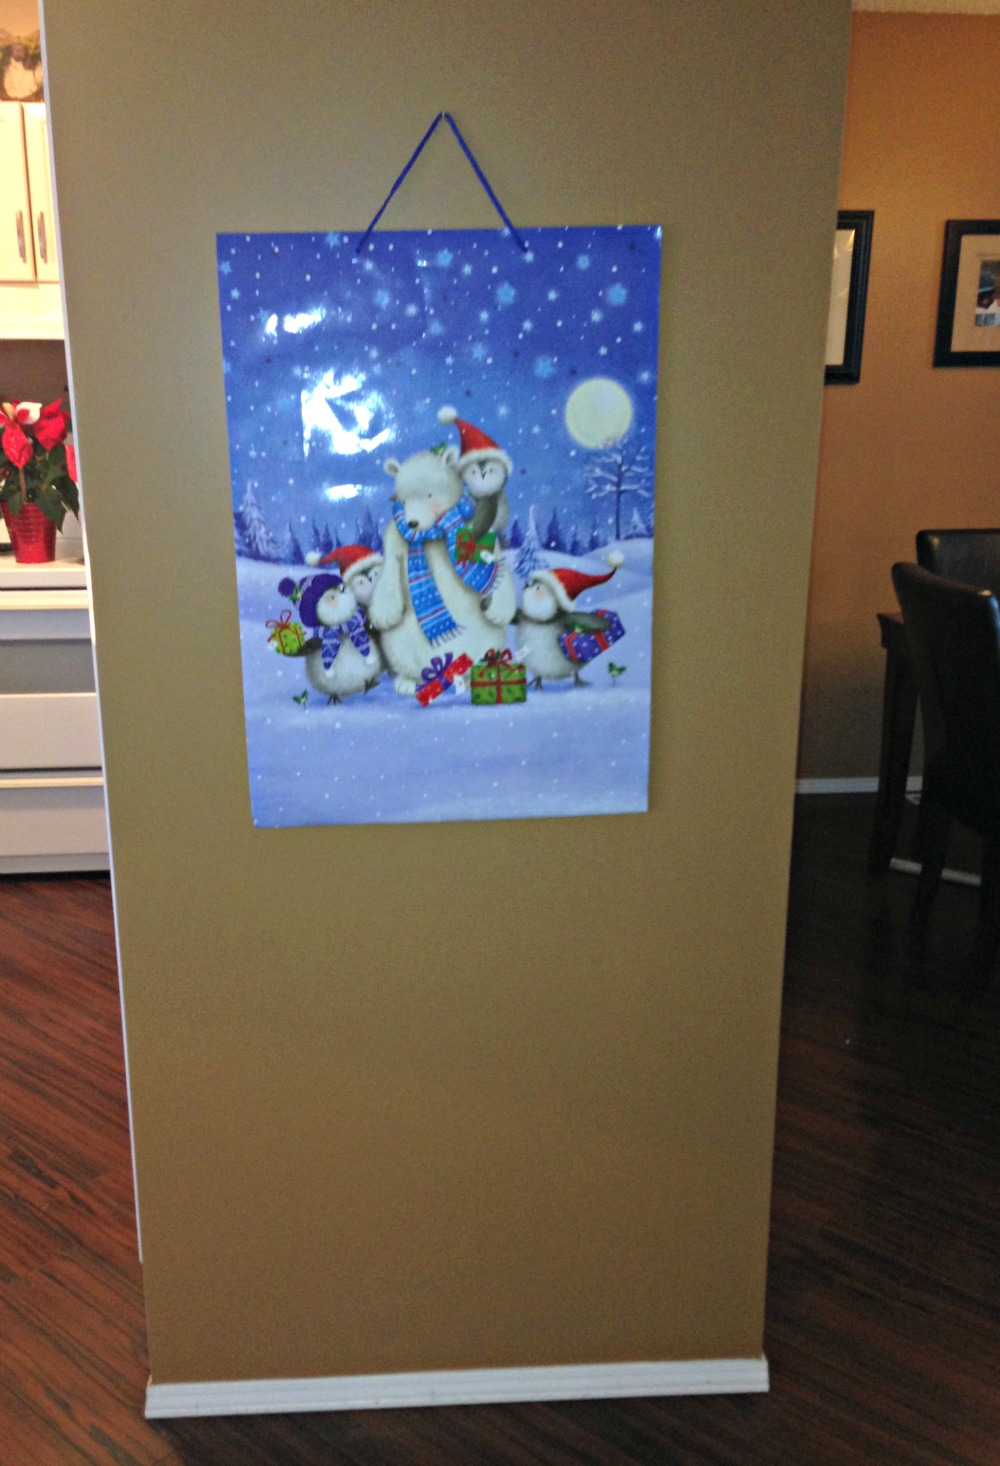 Re-Purposed Gift Bag Christmas Wall Art. Glue bag to foam board and use handle to hang. Easy fun craft for kids and adults. #Christmas #art #crafts #gift_bag